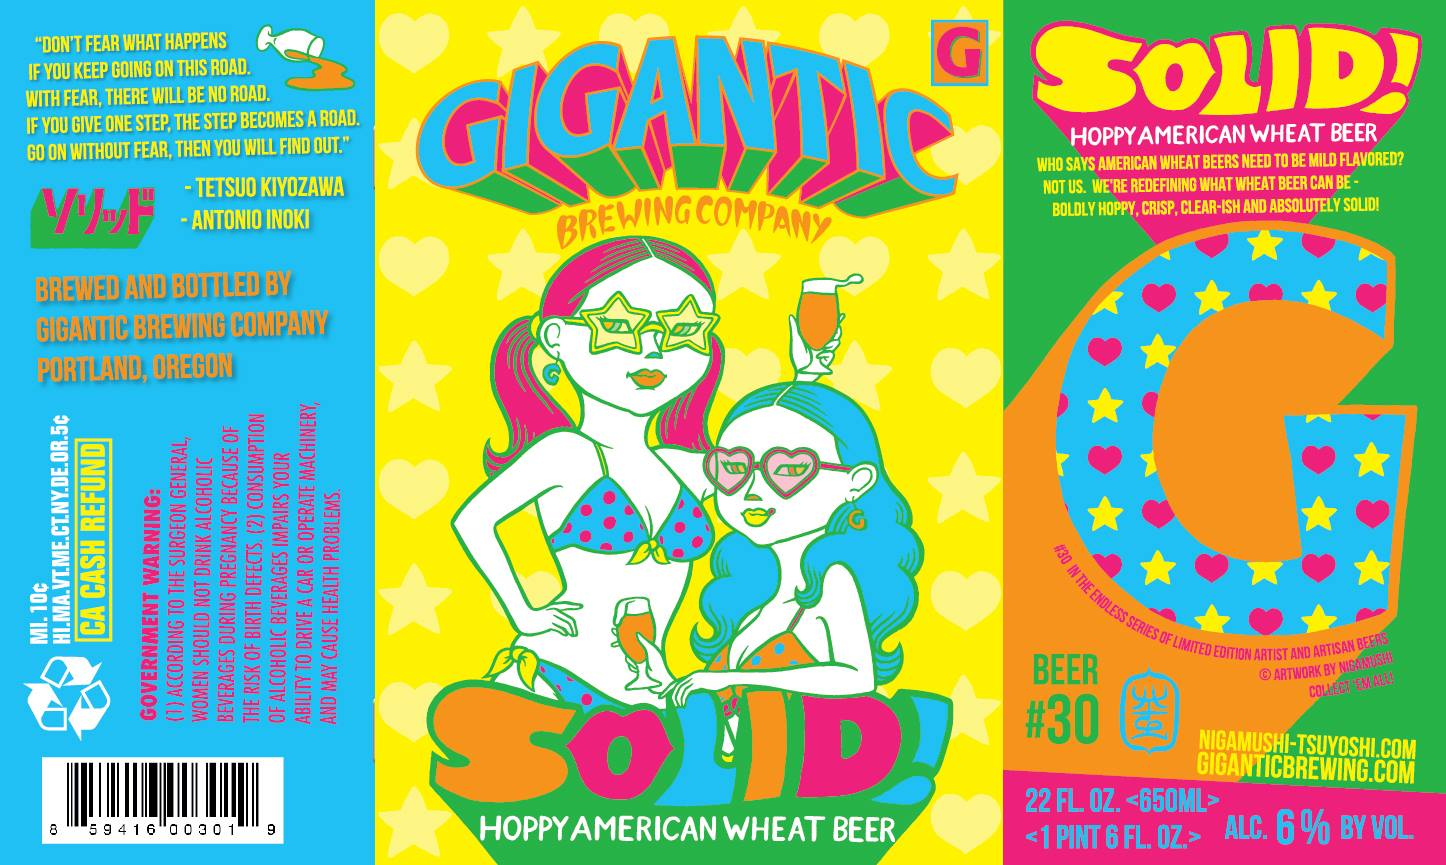 Gigantic SOLID! Hoppy American Wheat Beer Label